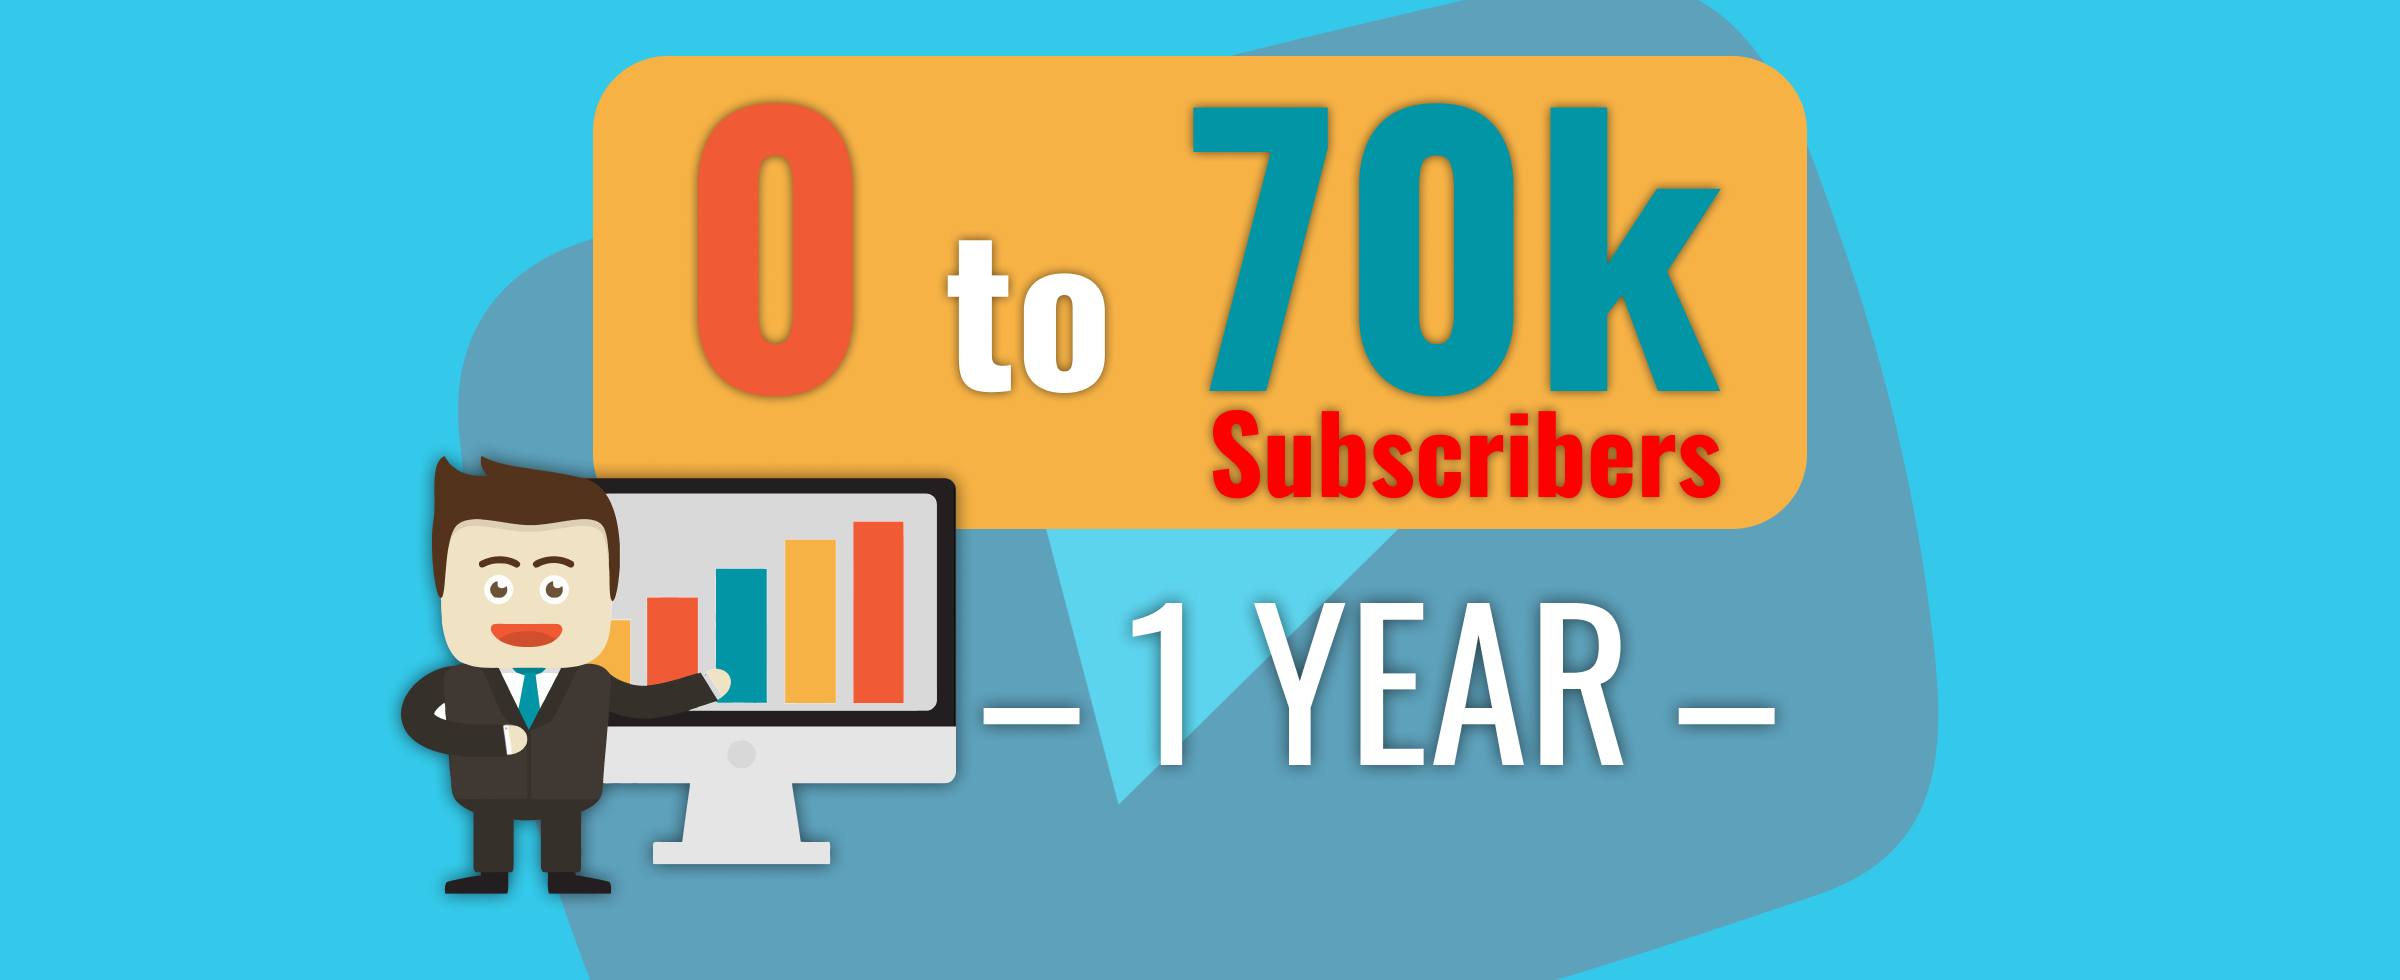 How I Went From 0 to 70k Subscribers on YouTube in 1 Year – And How Much Money I Made